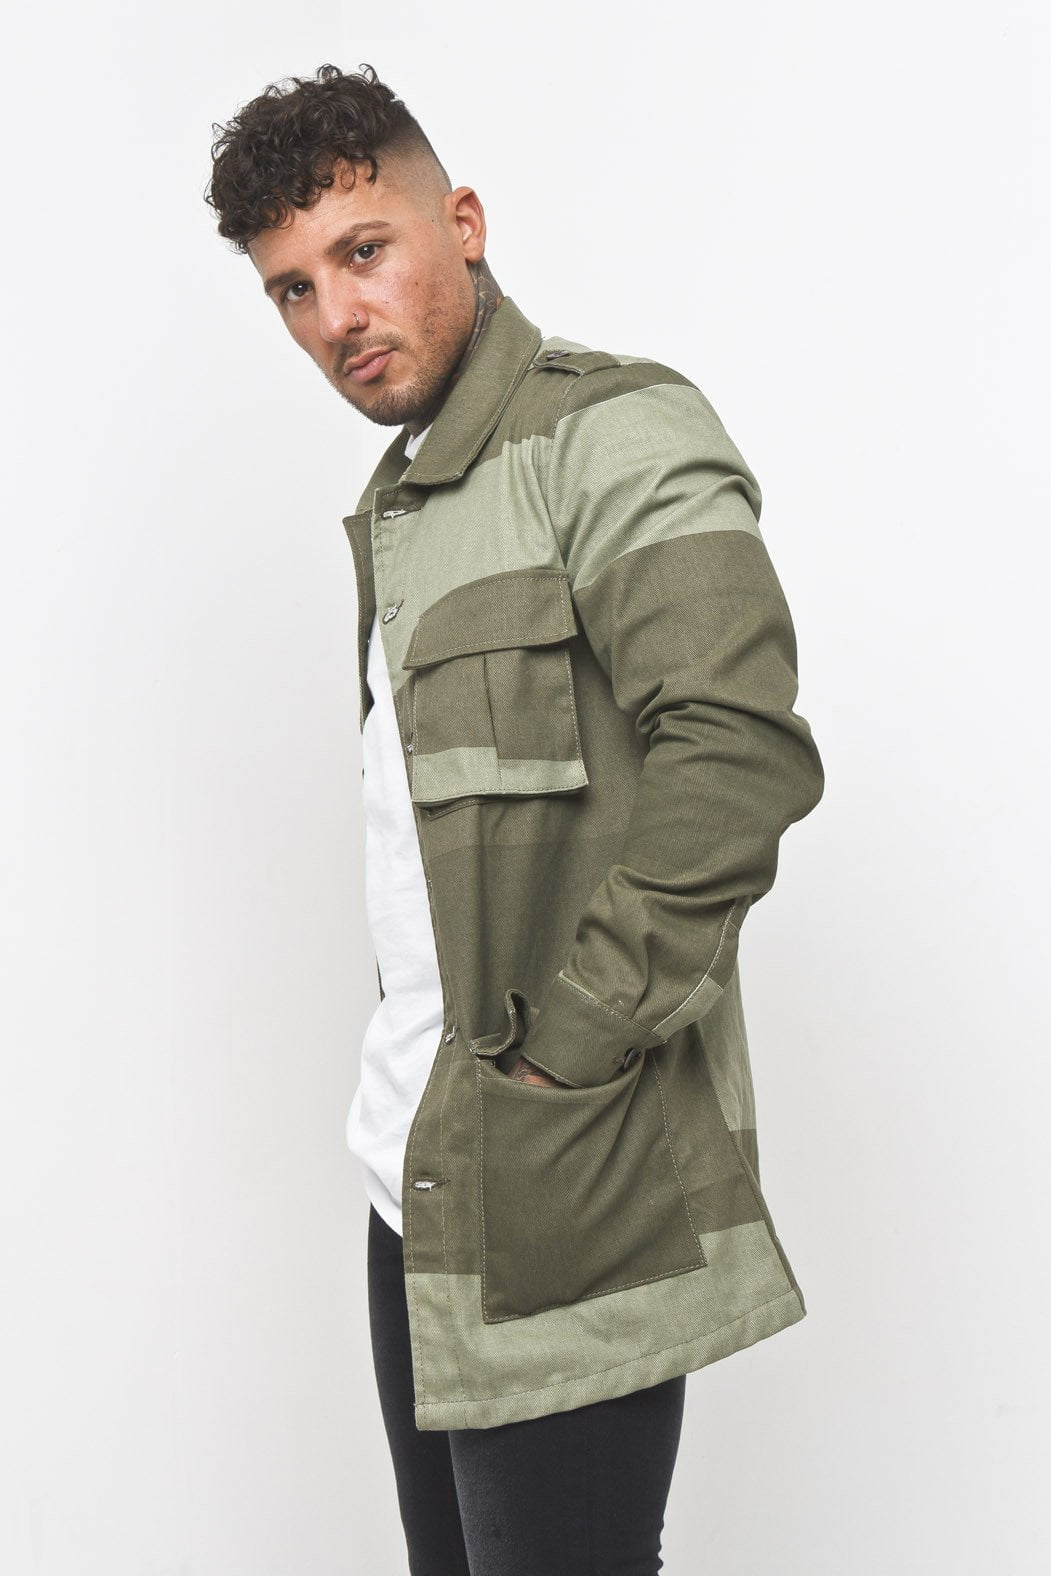 Khaki Stripe Military Jacket - Liquor N Poker  Liquor N Poker